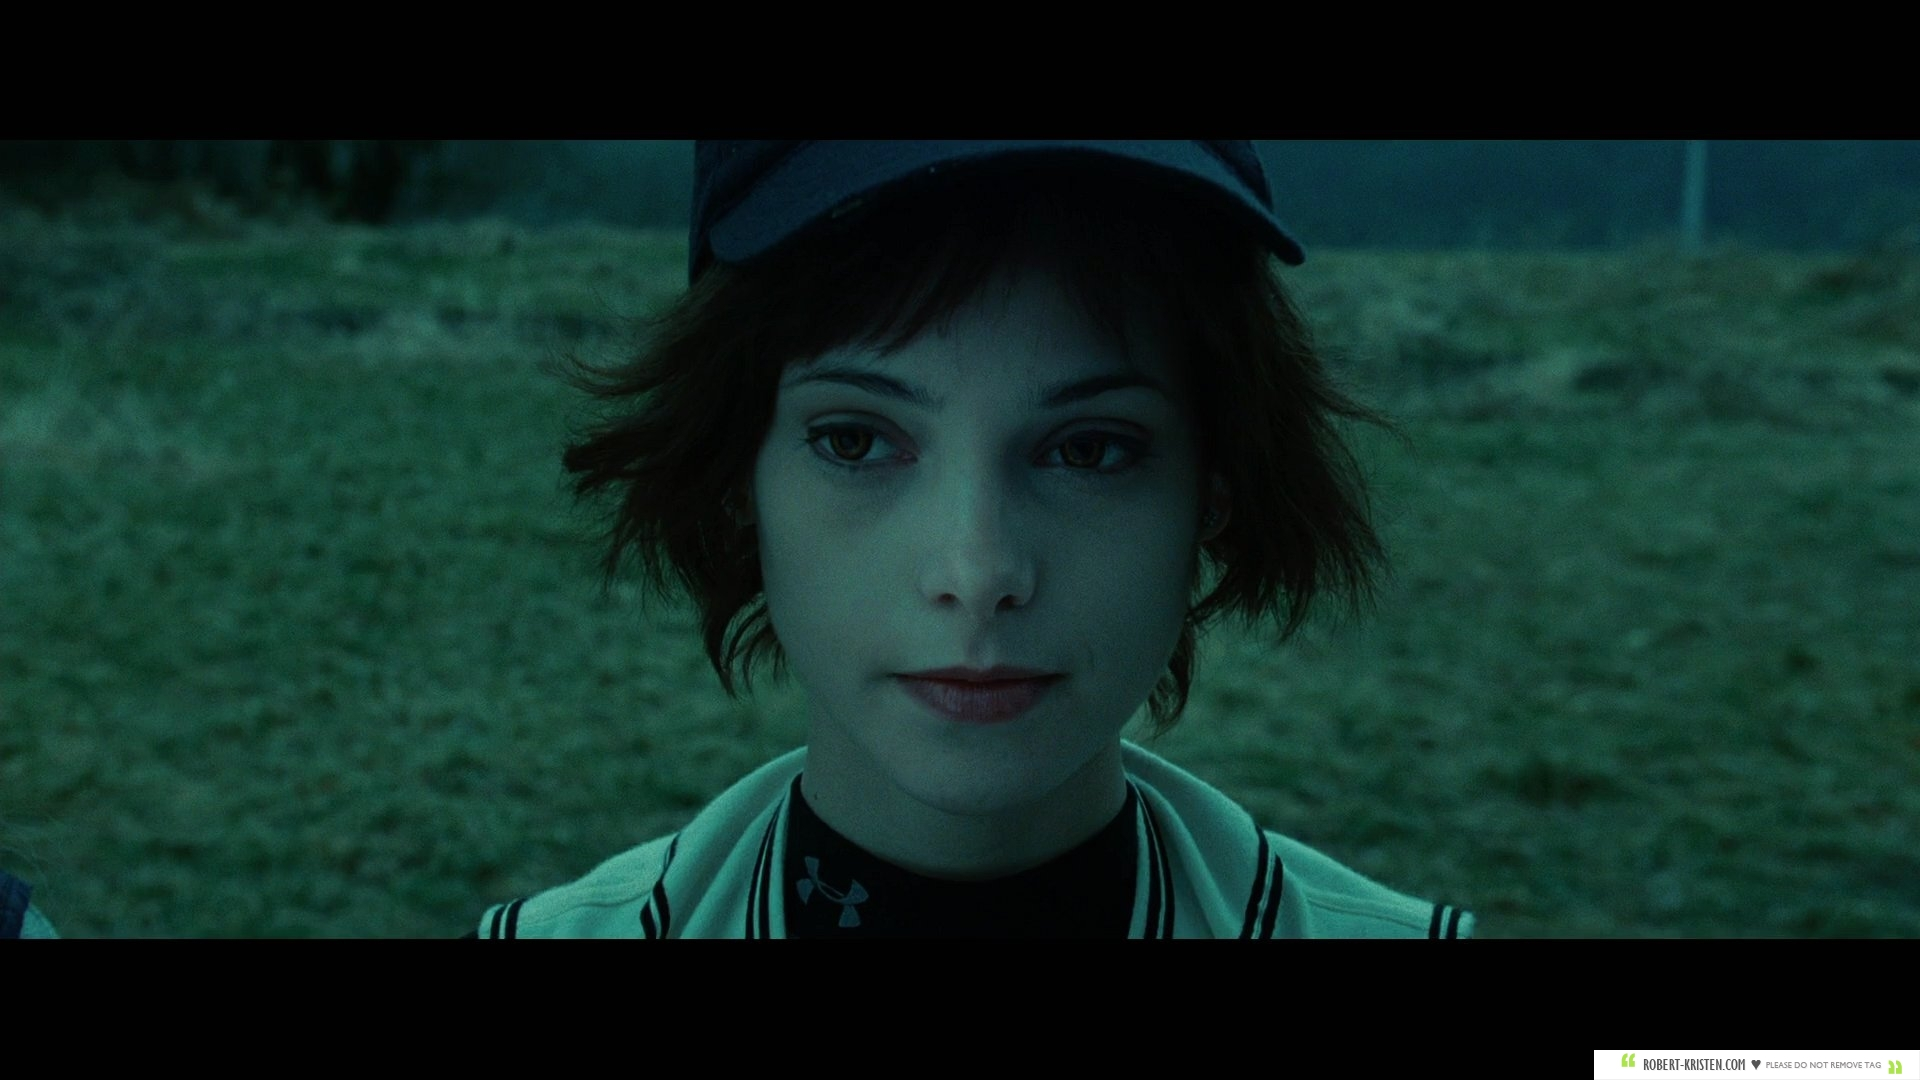 alice cullen images alice twilight hd wallpaper and background